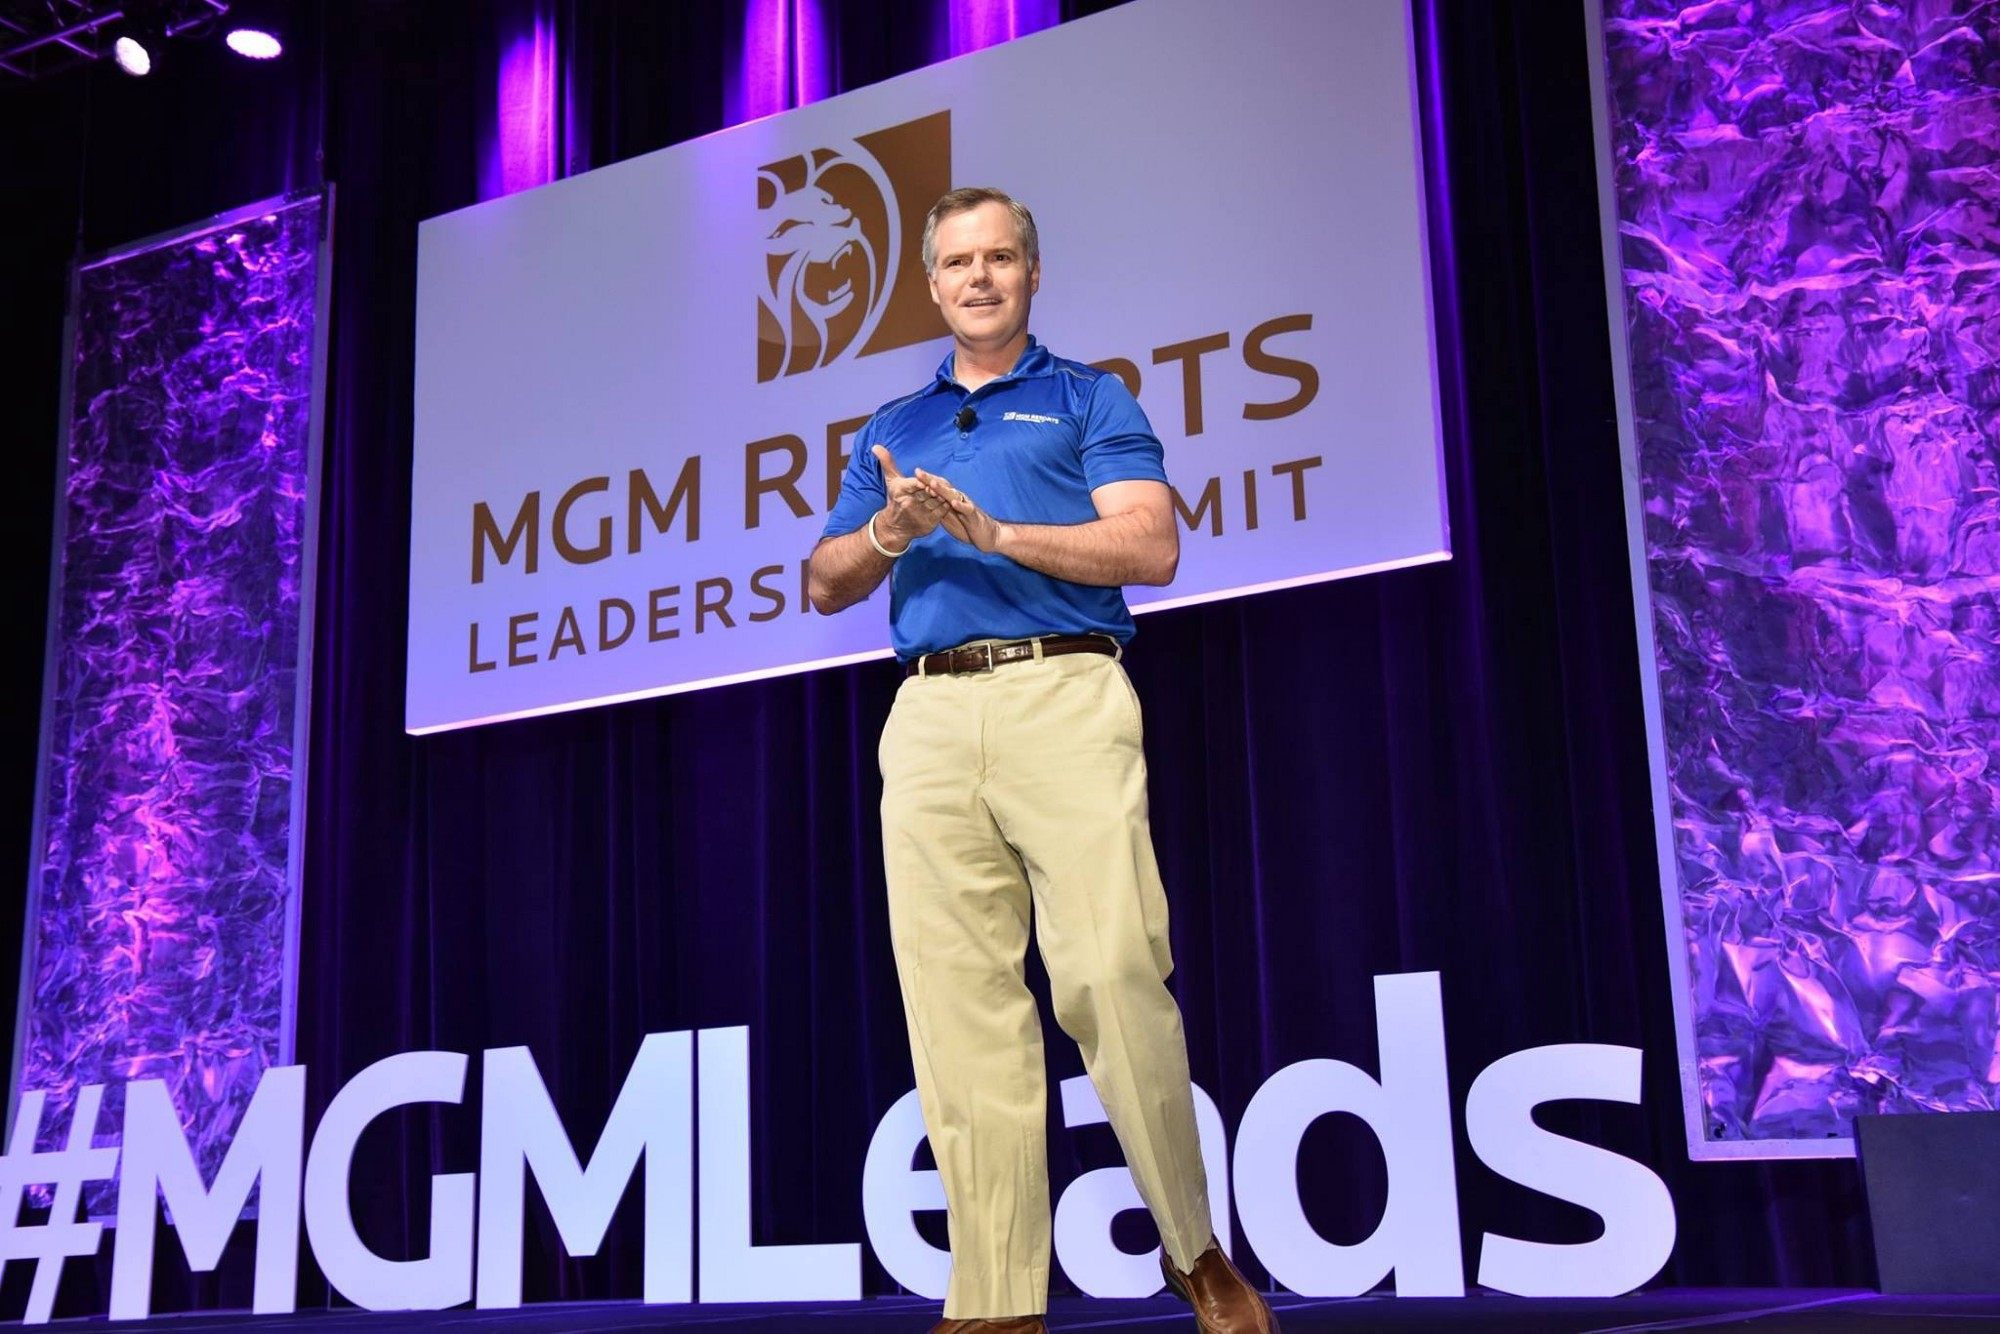 MGM Resorts to Layoff Three Percent of Workforce by 2020